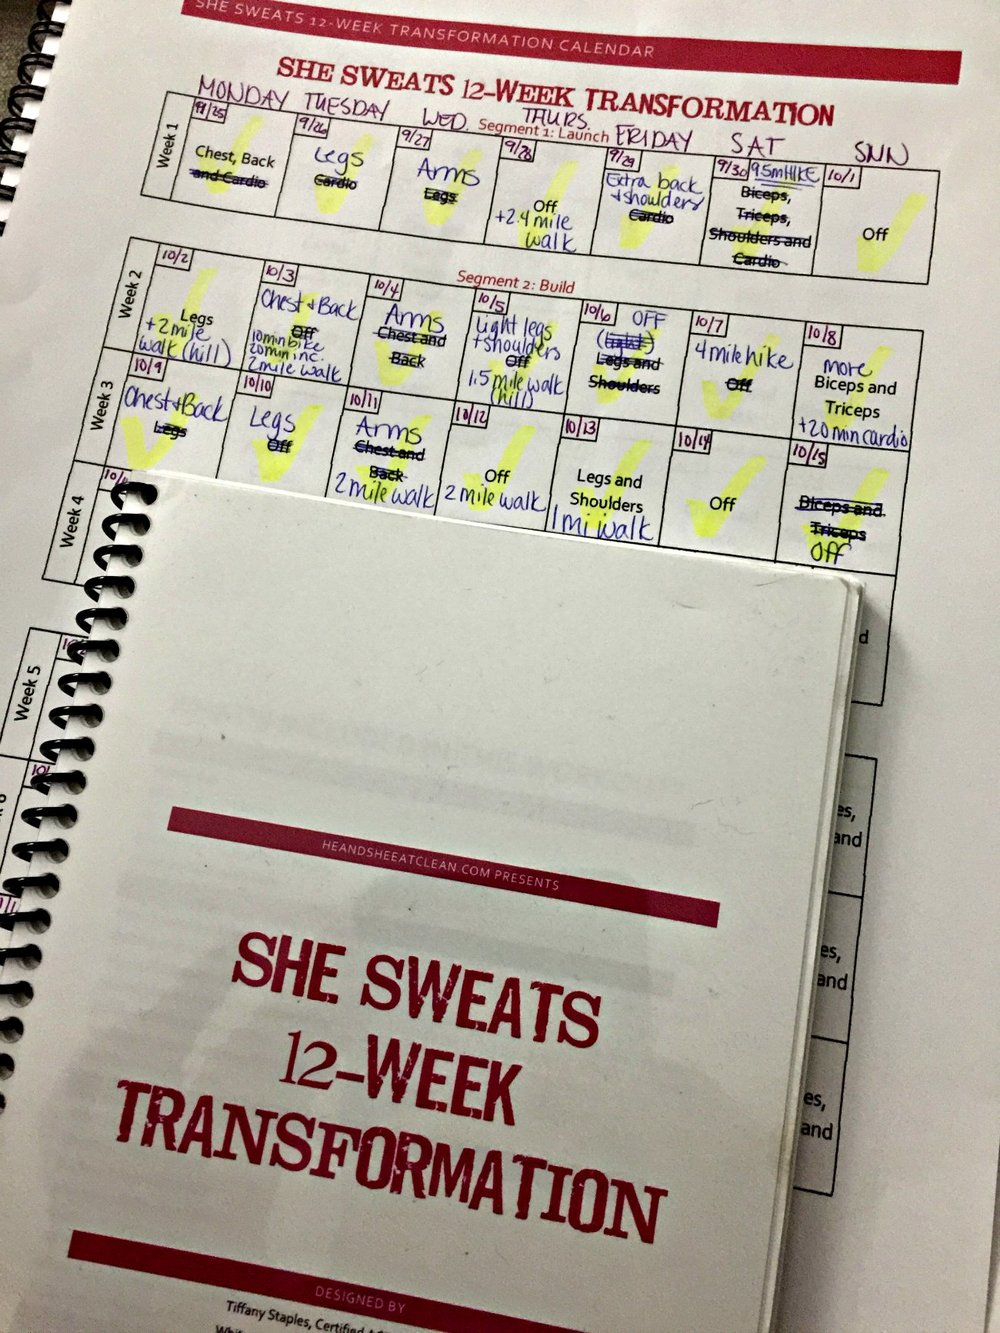 She Sweats 12-Week Transformation